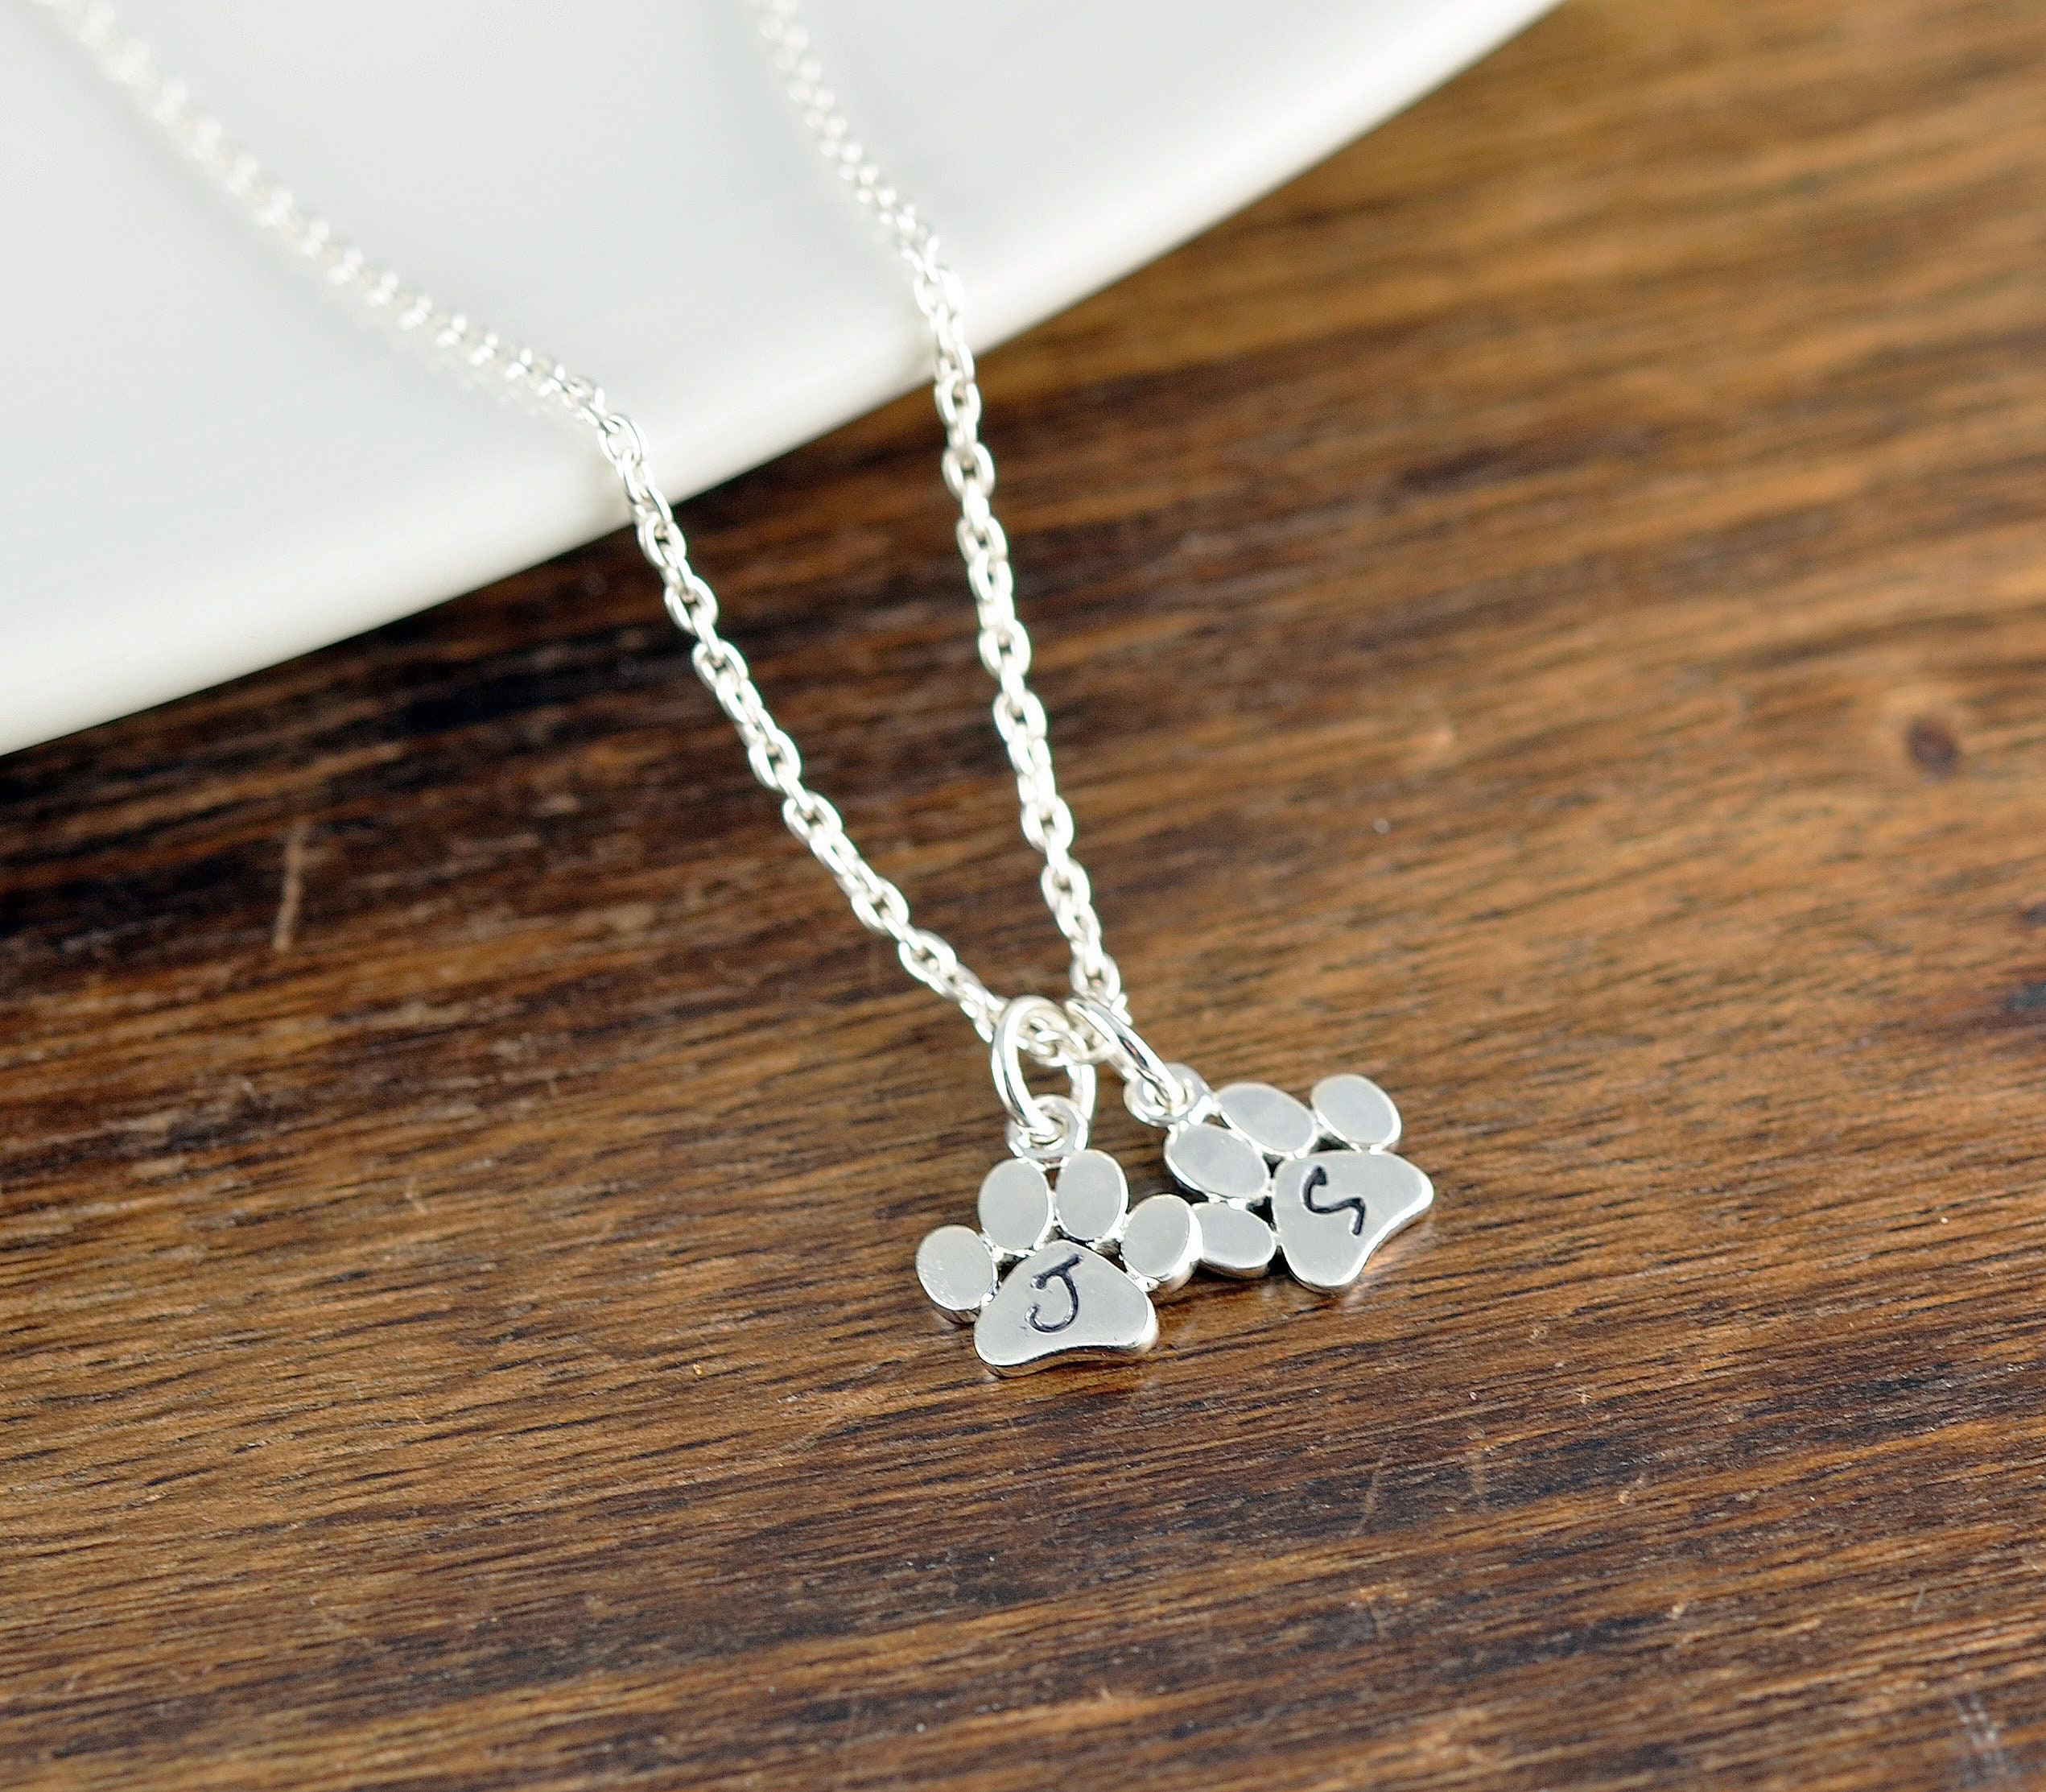 and zoom star silver letter alloy charmming item moon lover necklace pendant jewelry